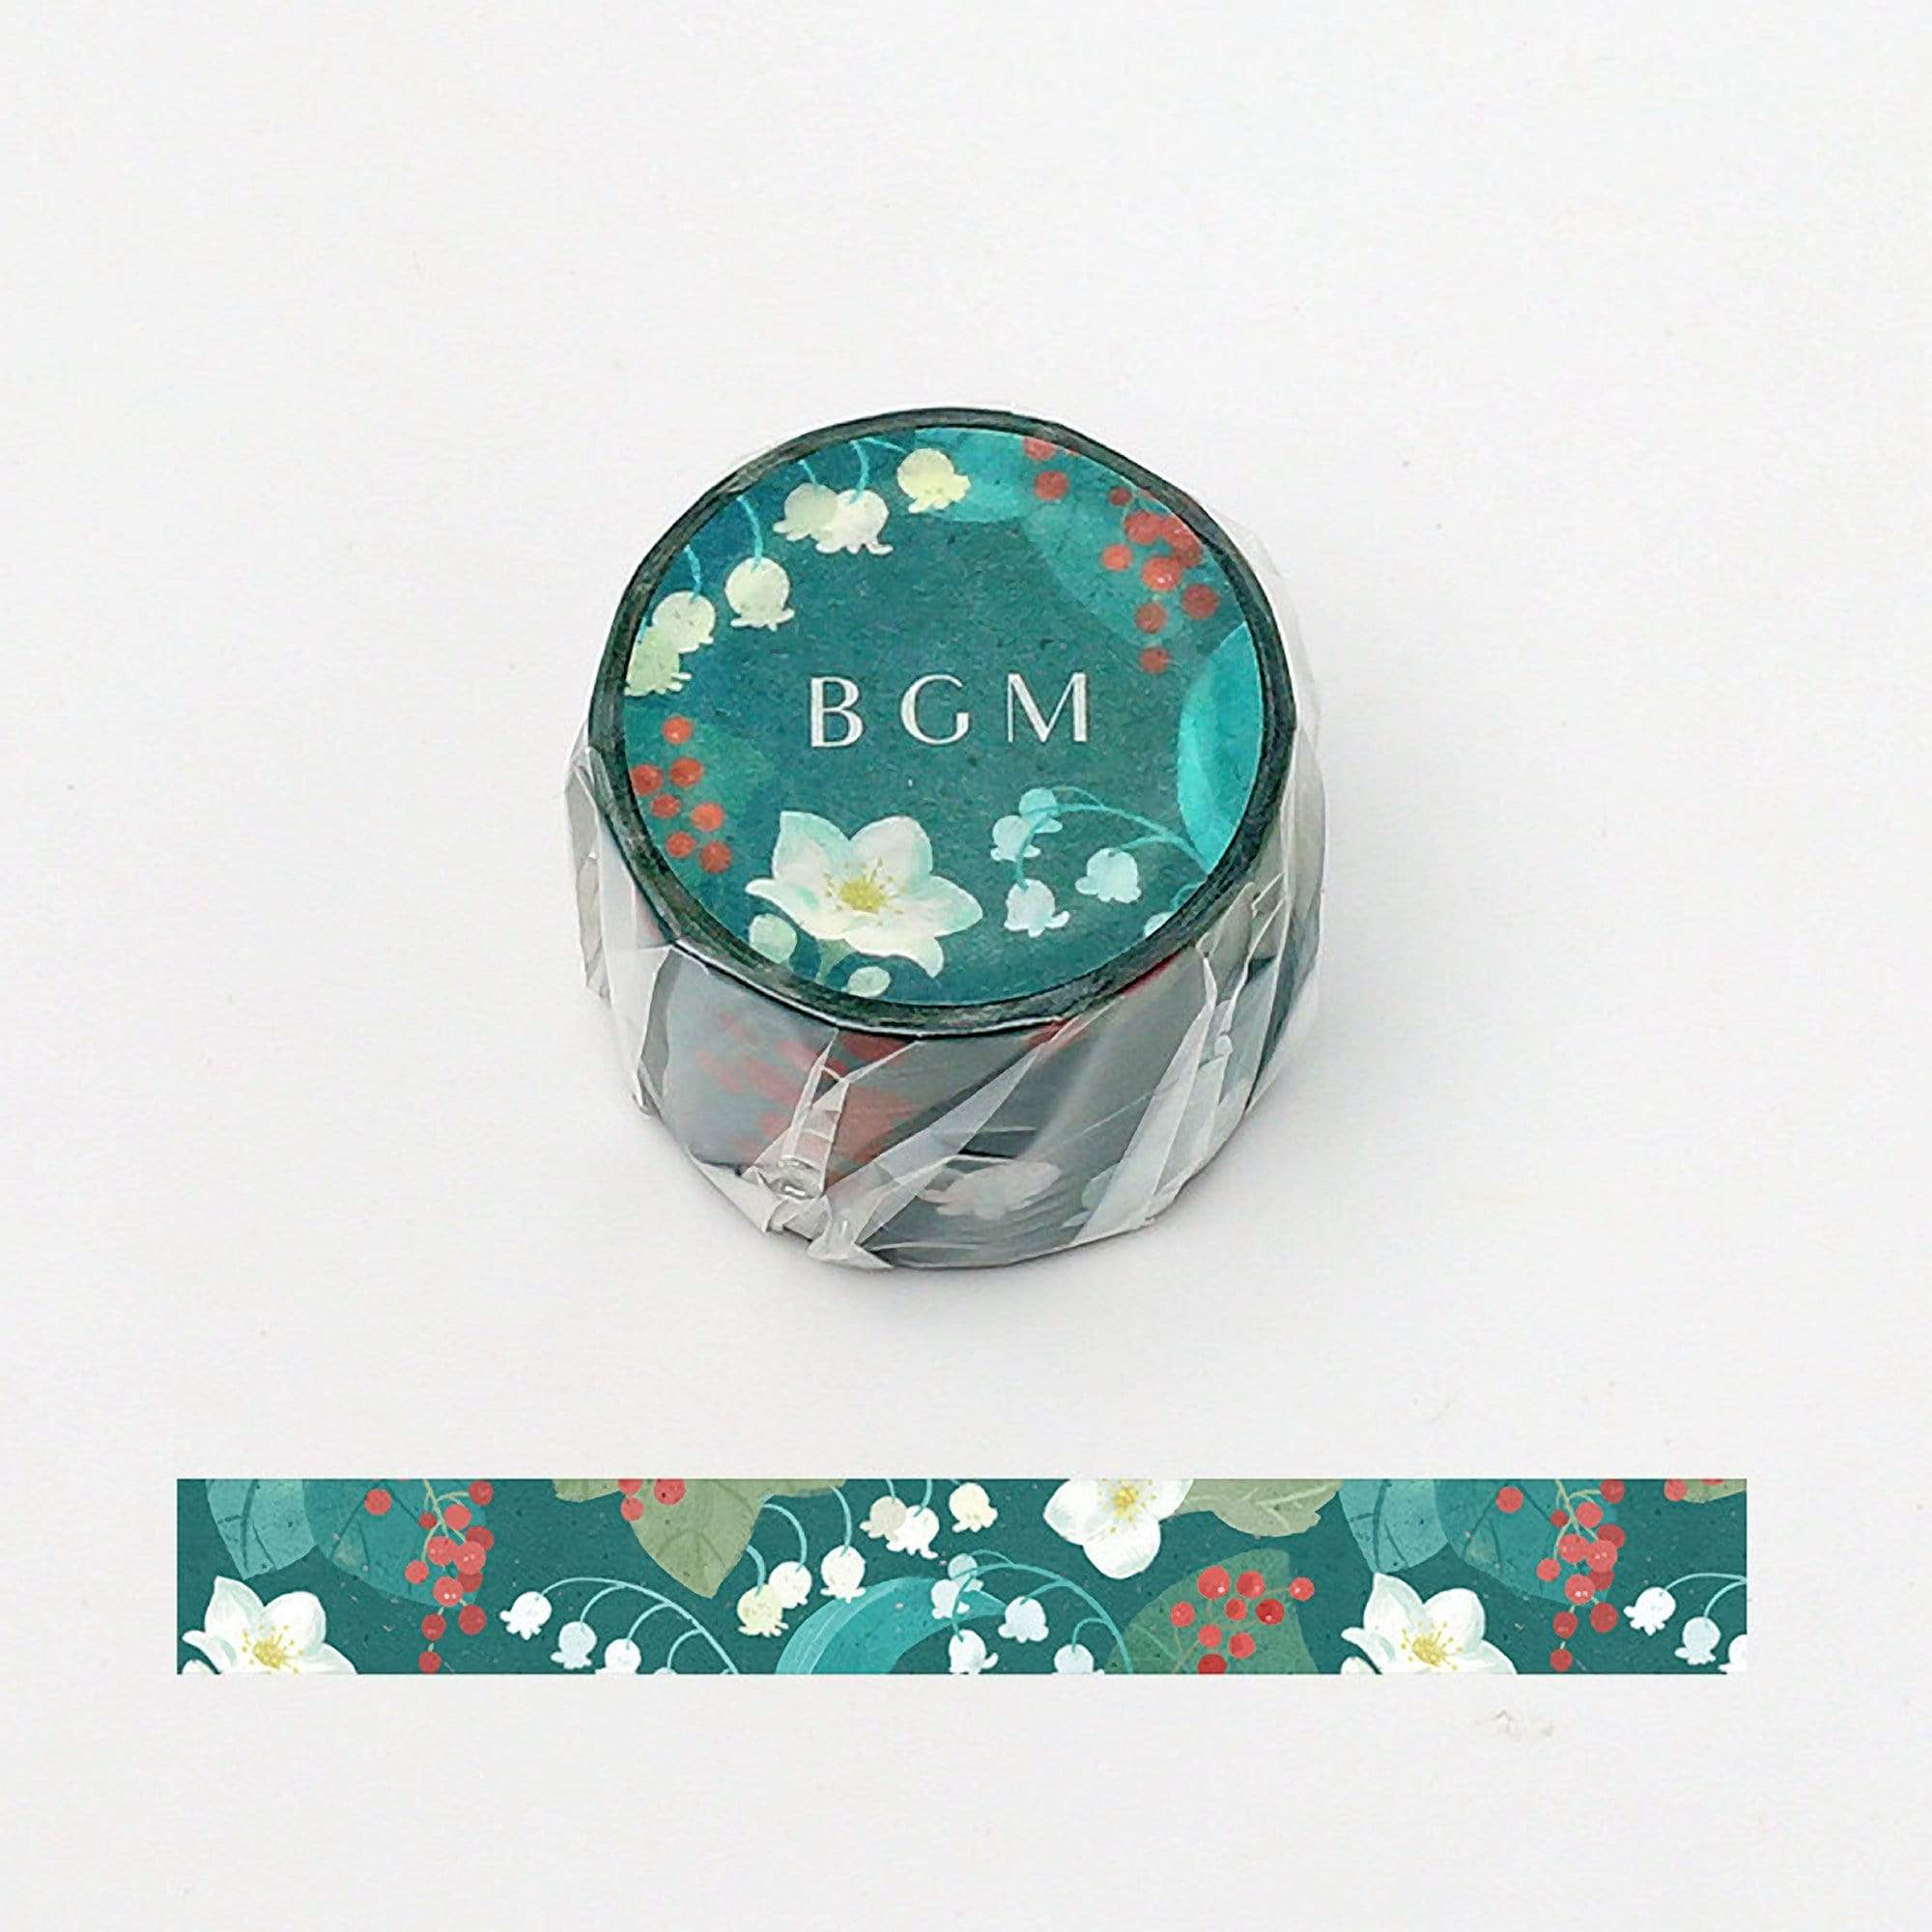 BGM Lily of the Valley Washi Tape - The Stationery Life!